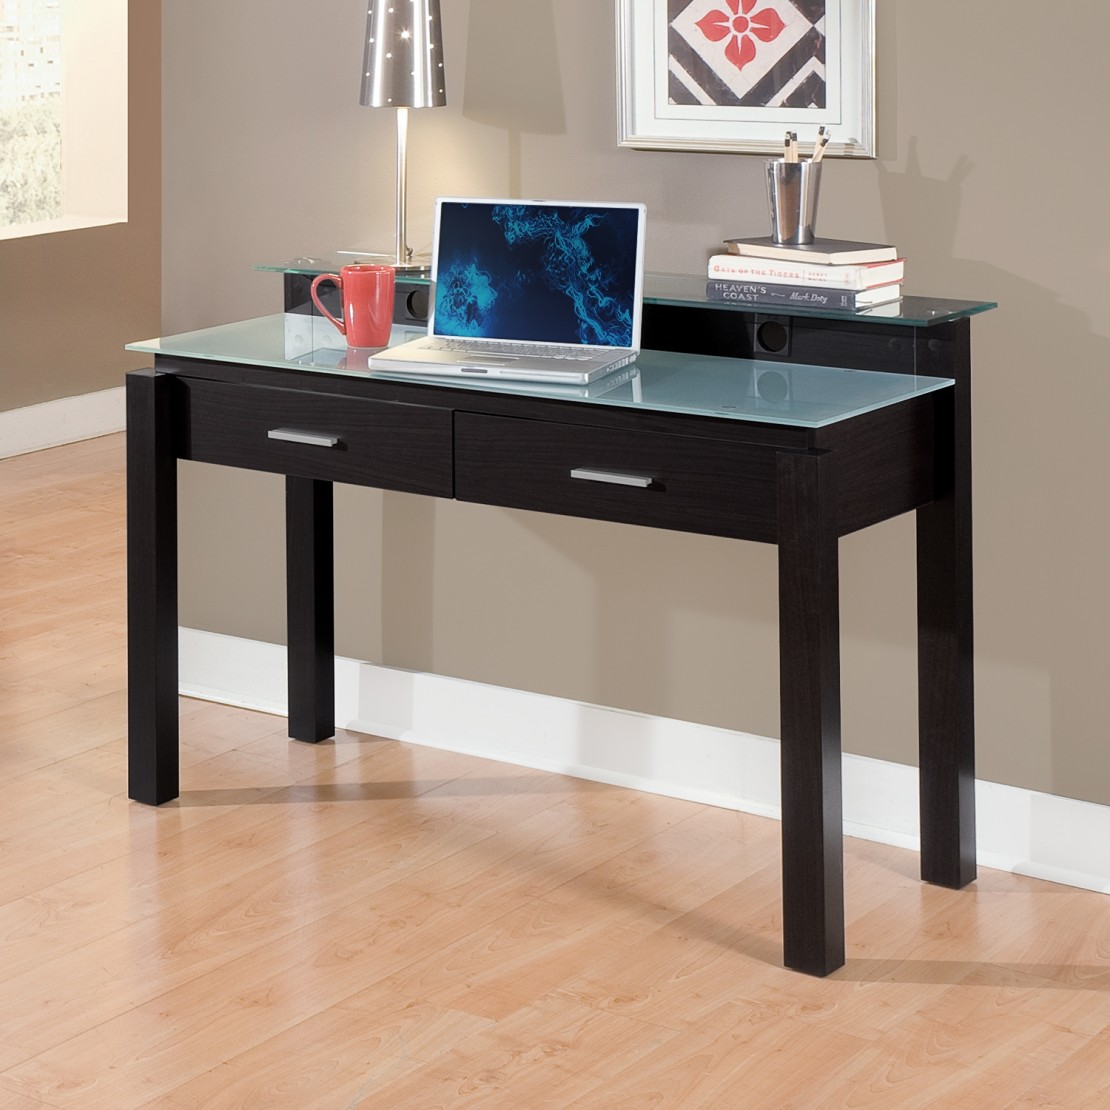 Image of: Simple Corner Computer Desk With Storage